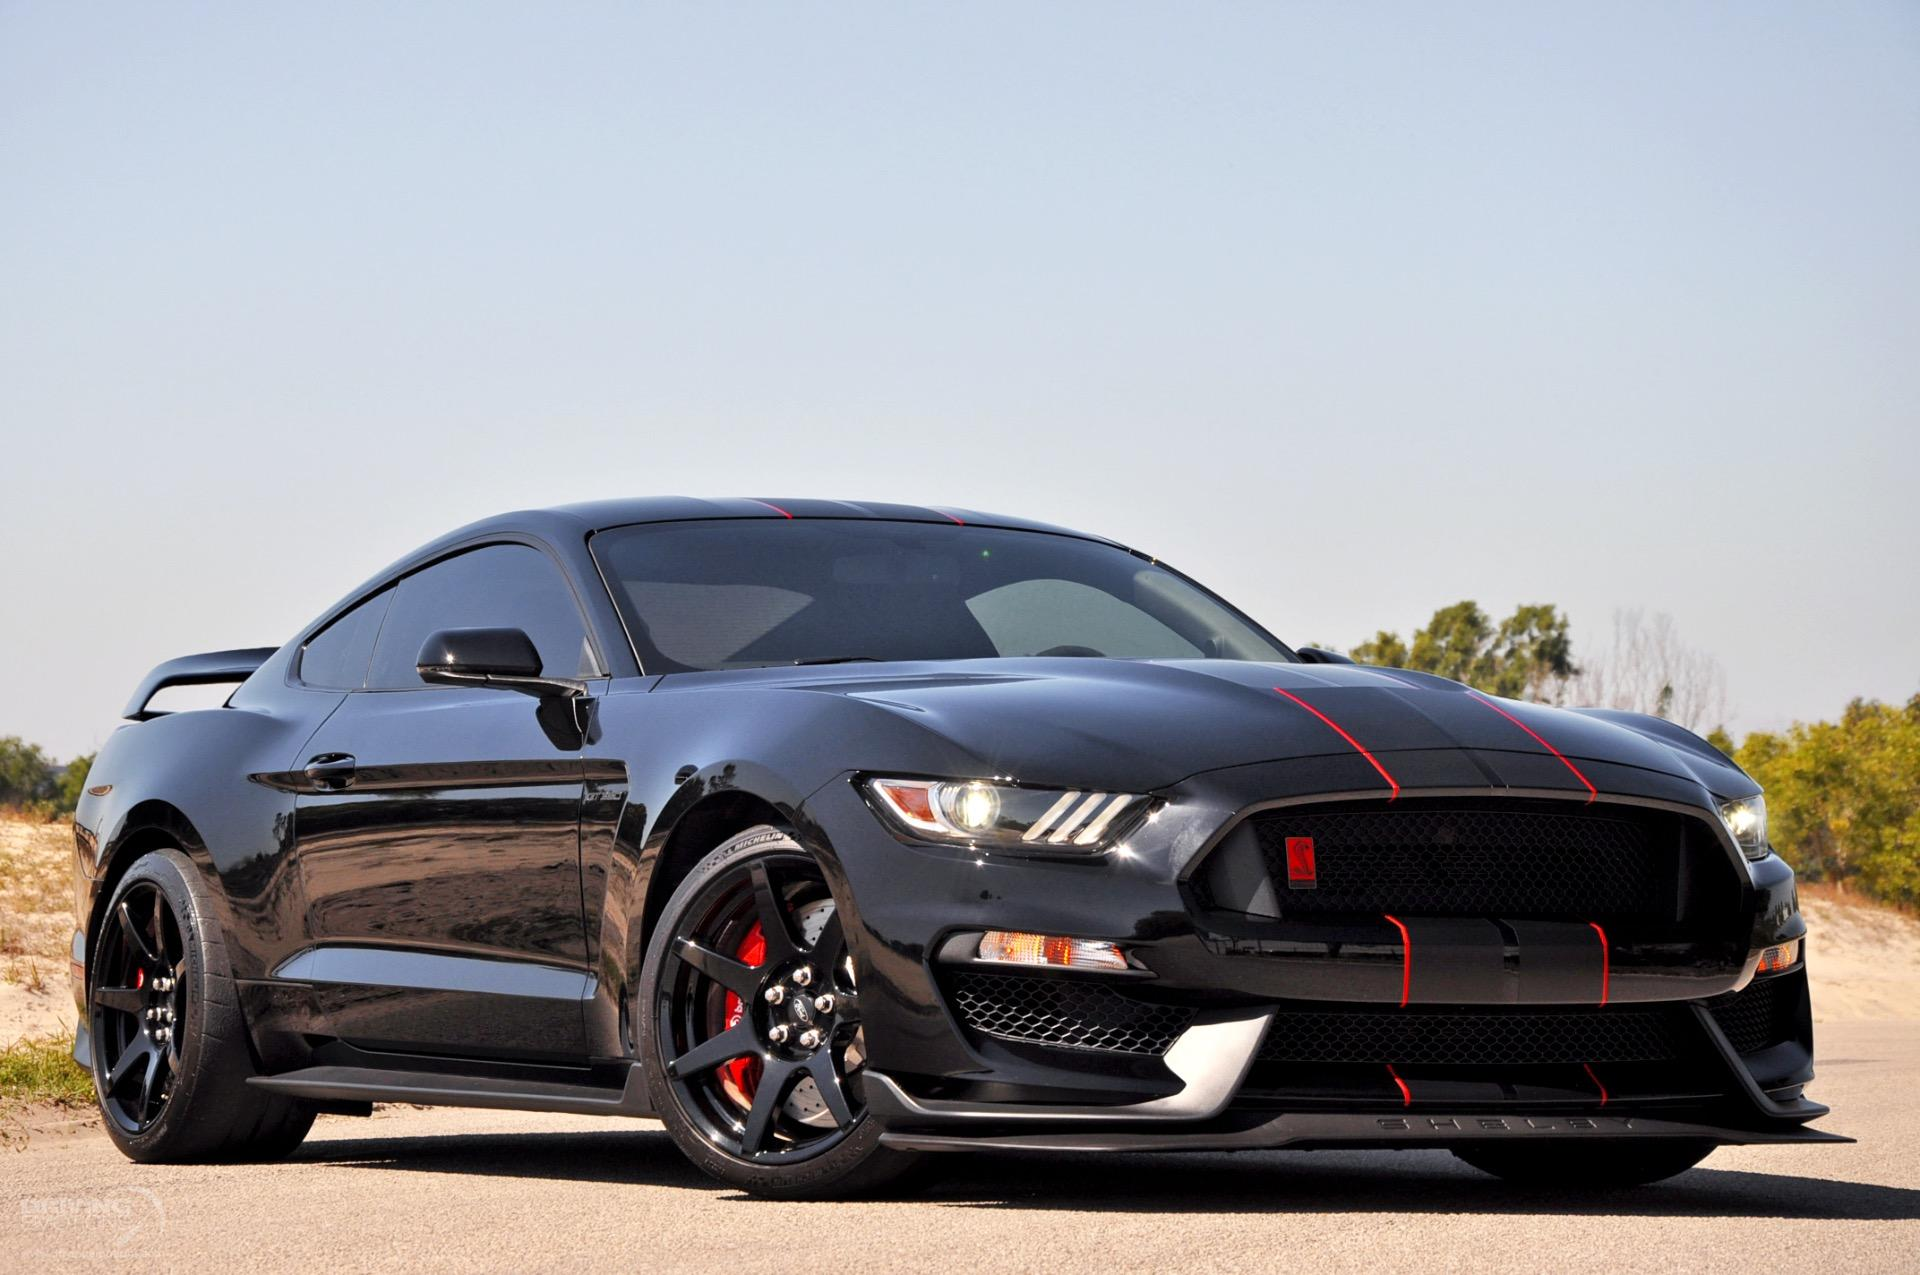 gt350r shelby mustang ford p38 info contact